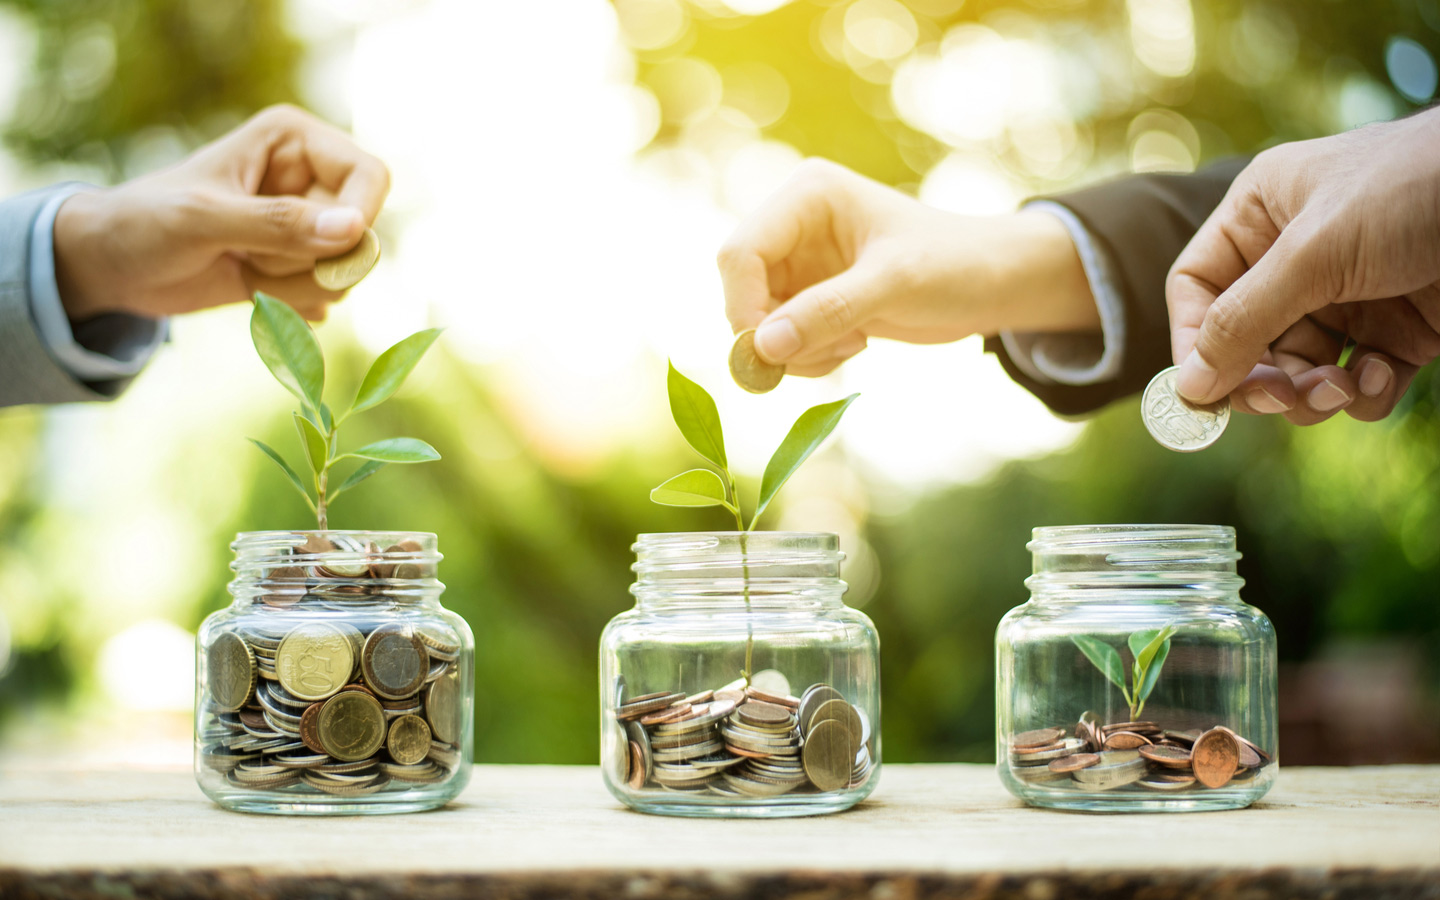 crowdfunding in the UAE